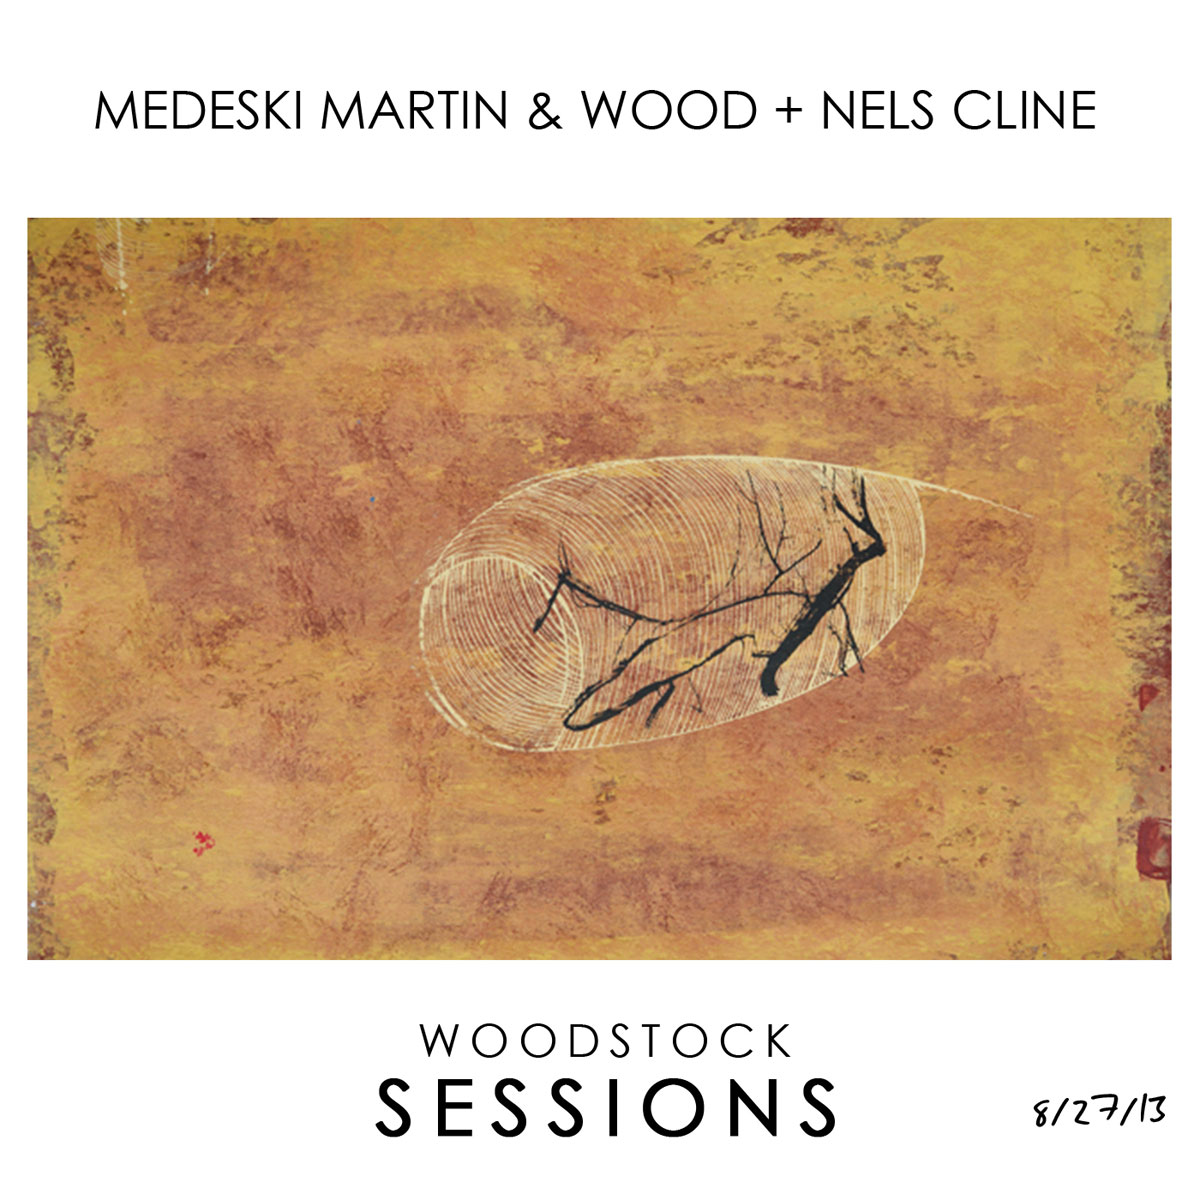 Medeski, Martin & Wood + Nels Cline, The Woodstock Sessions Vol. 2